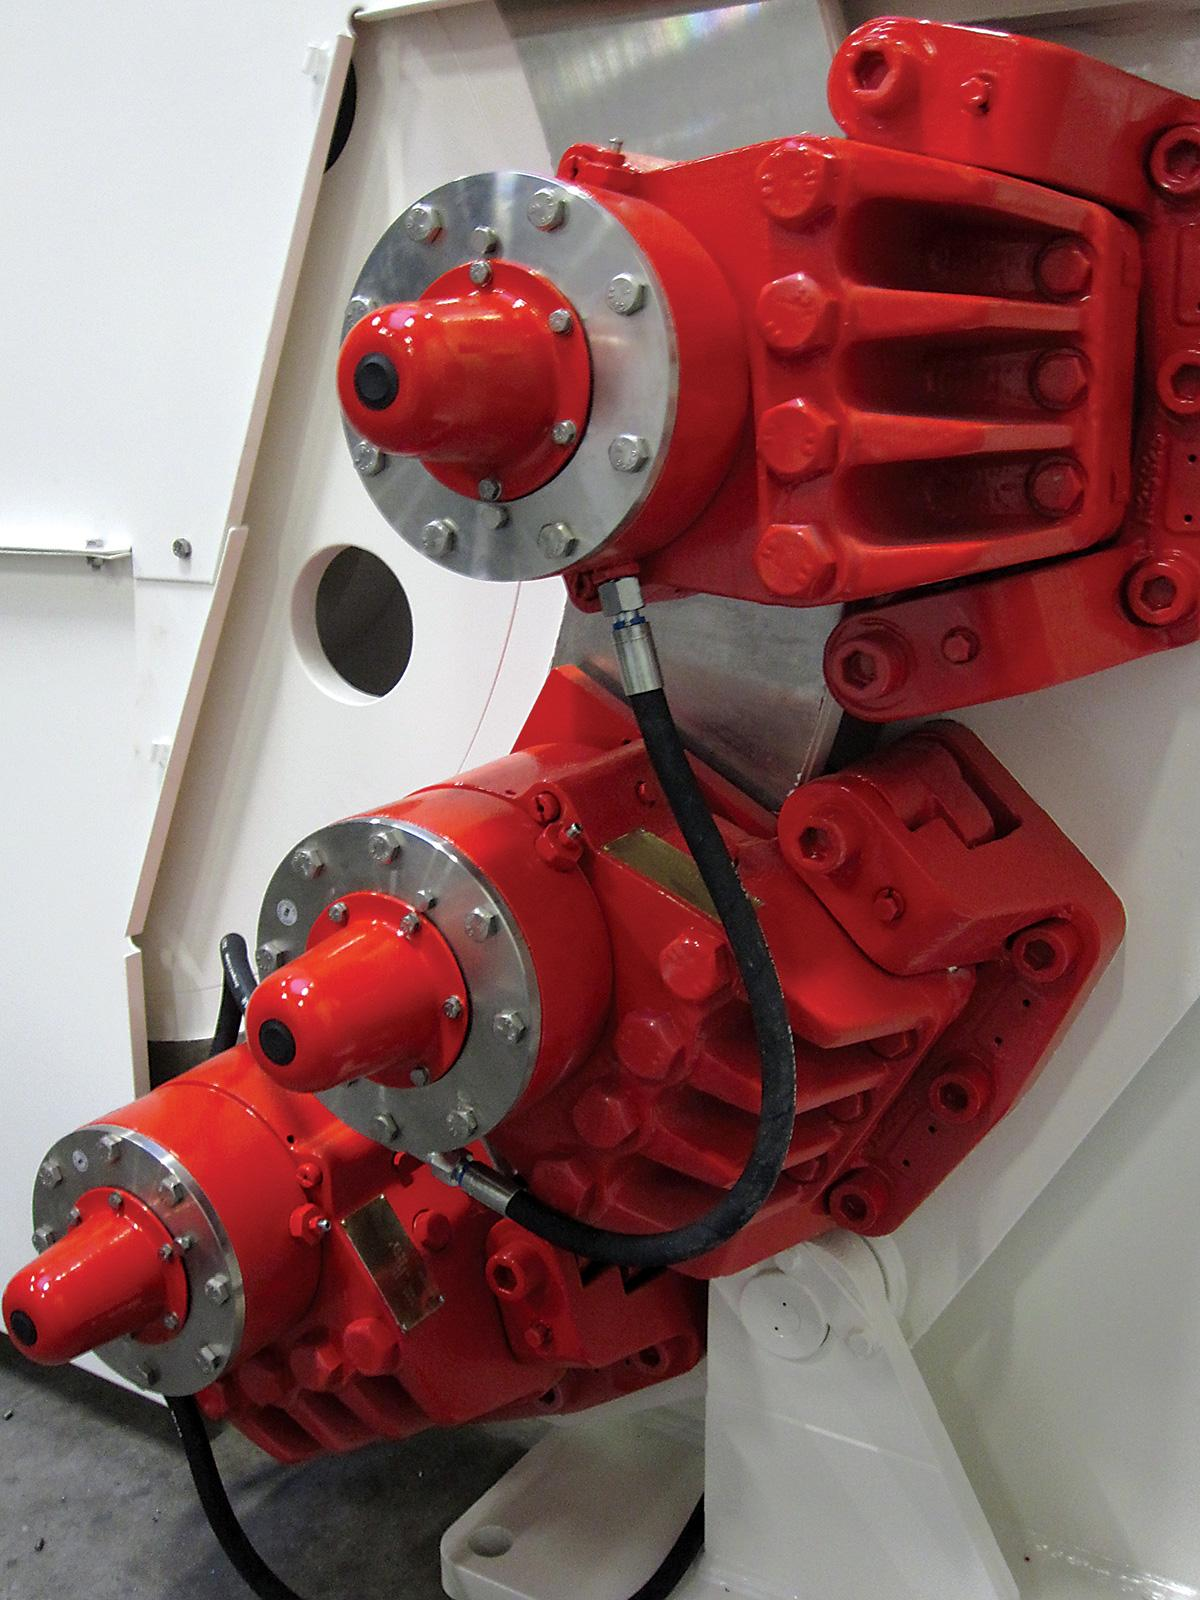 The past 45 years has seen revolutionary changes in the ways that braking systems are designed, maintained and supplied